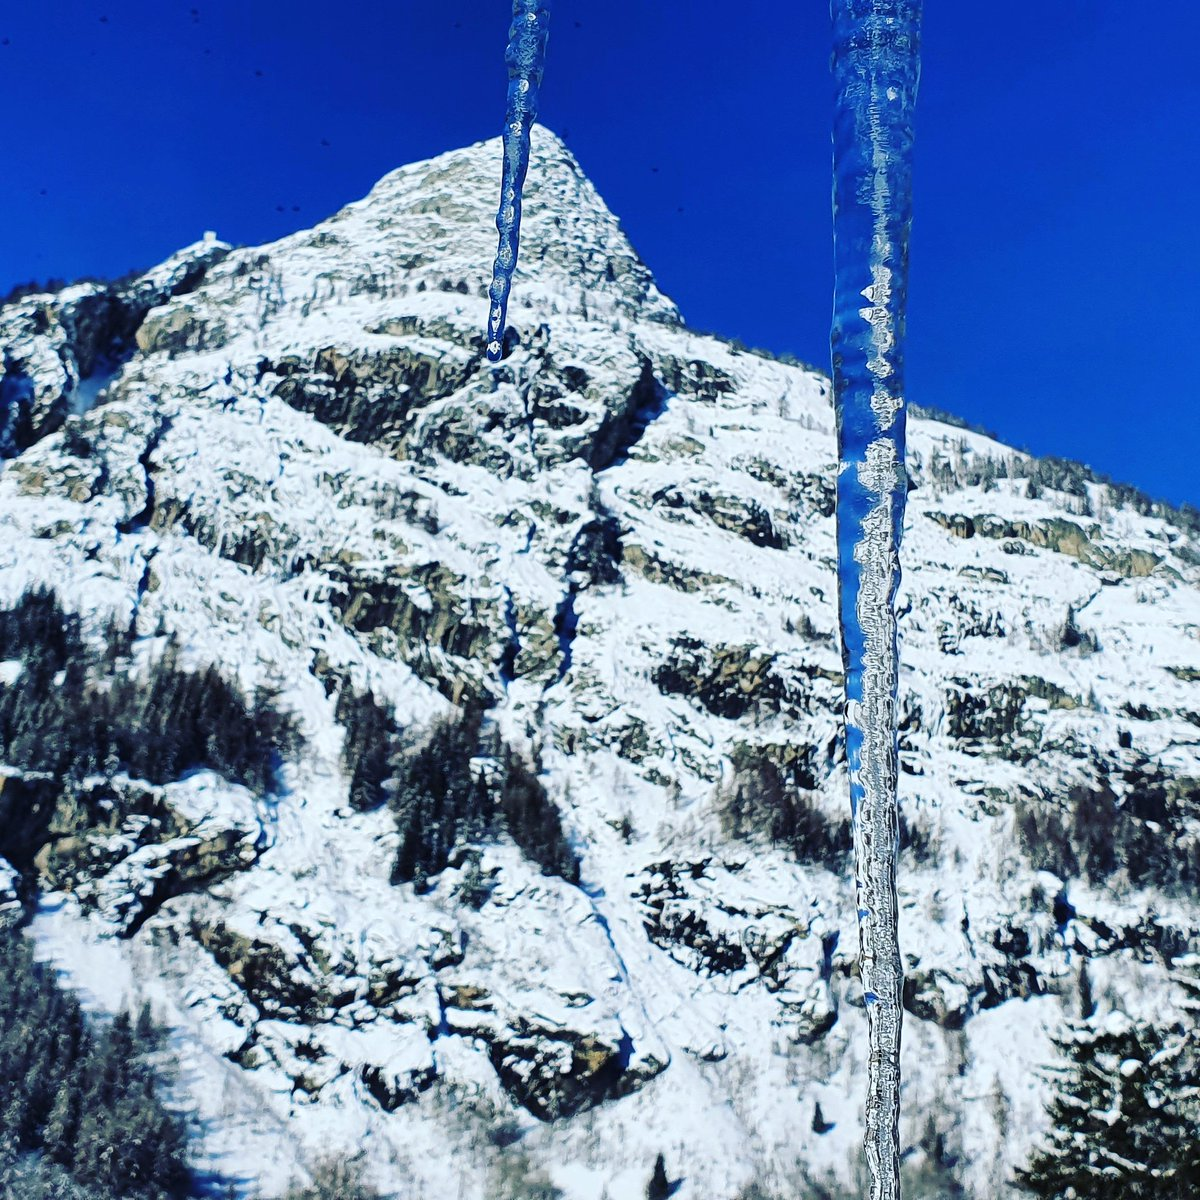 """GOOD MORNING  """"If you get up in the morning and think the future is going to be better, it is a bright day. Otherwise, it's not."""" – .@elonmusk #courmayeur #aostavalley #picoftheday #tourdumontblanc #nature #instamood #alps #moutainlovers #montblanc #skyway #hotelboutondor #winter"""